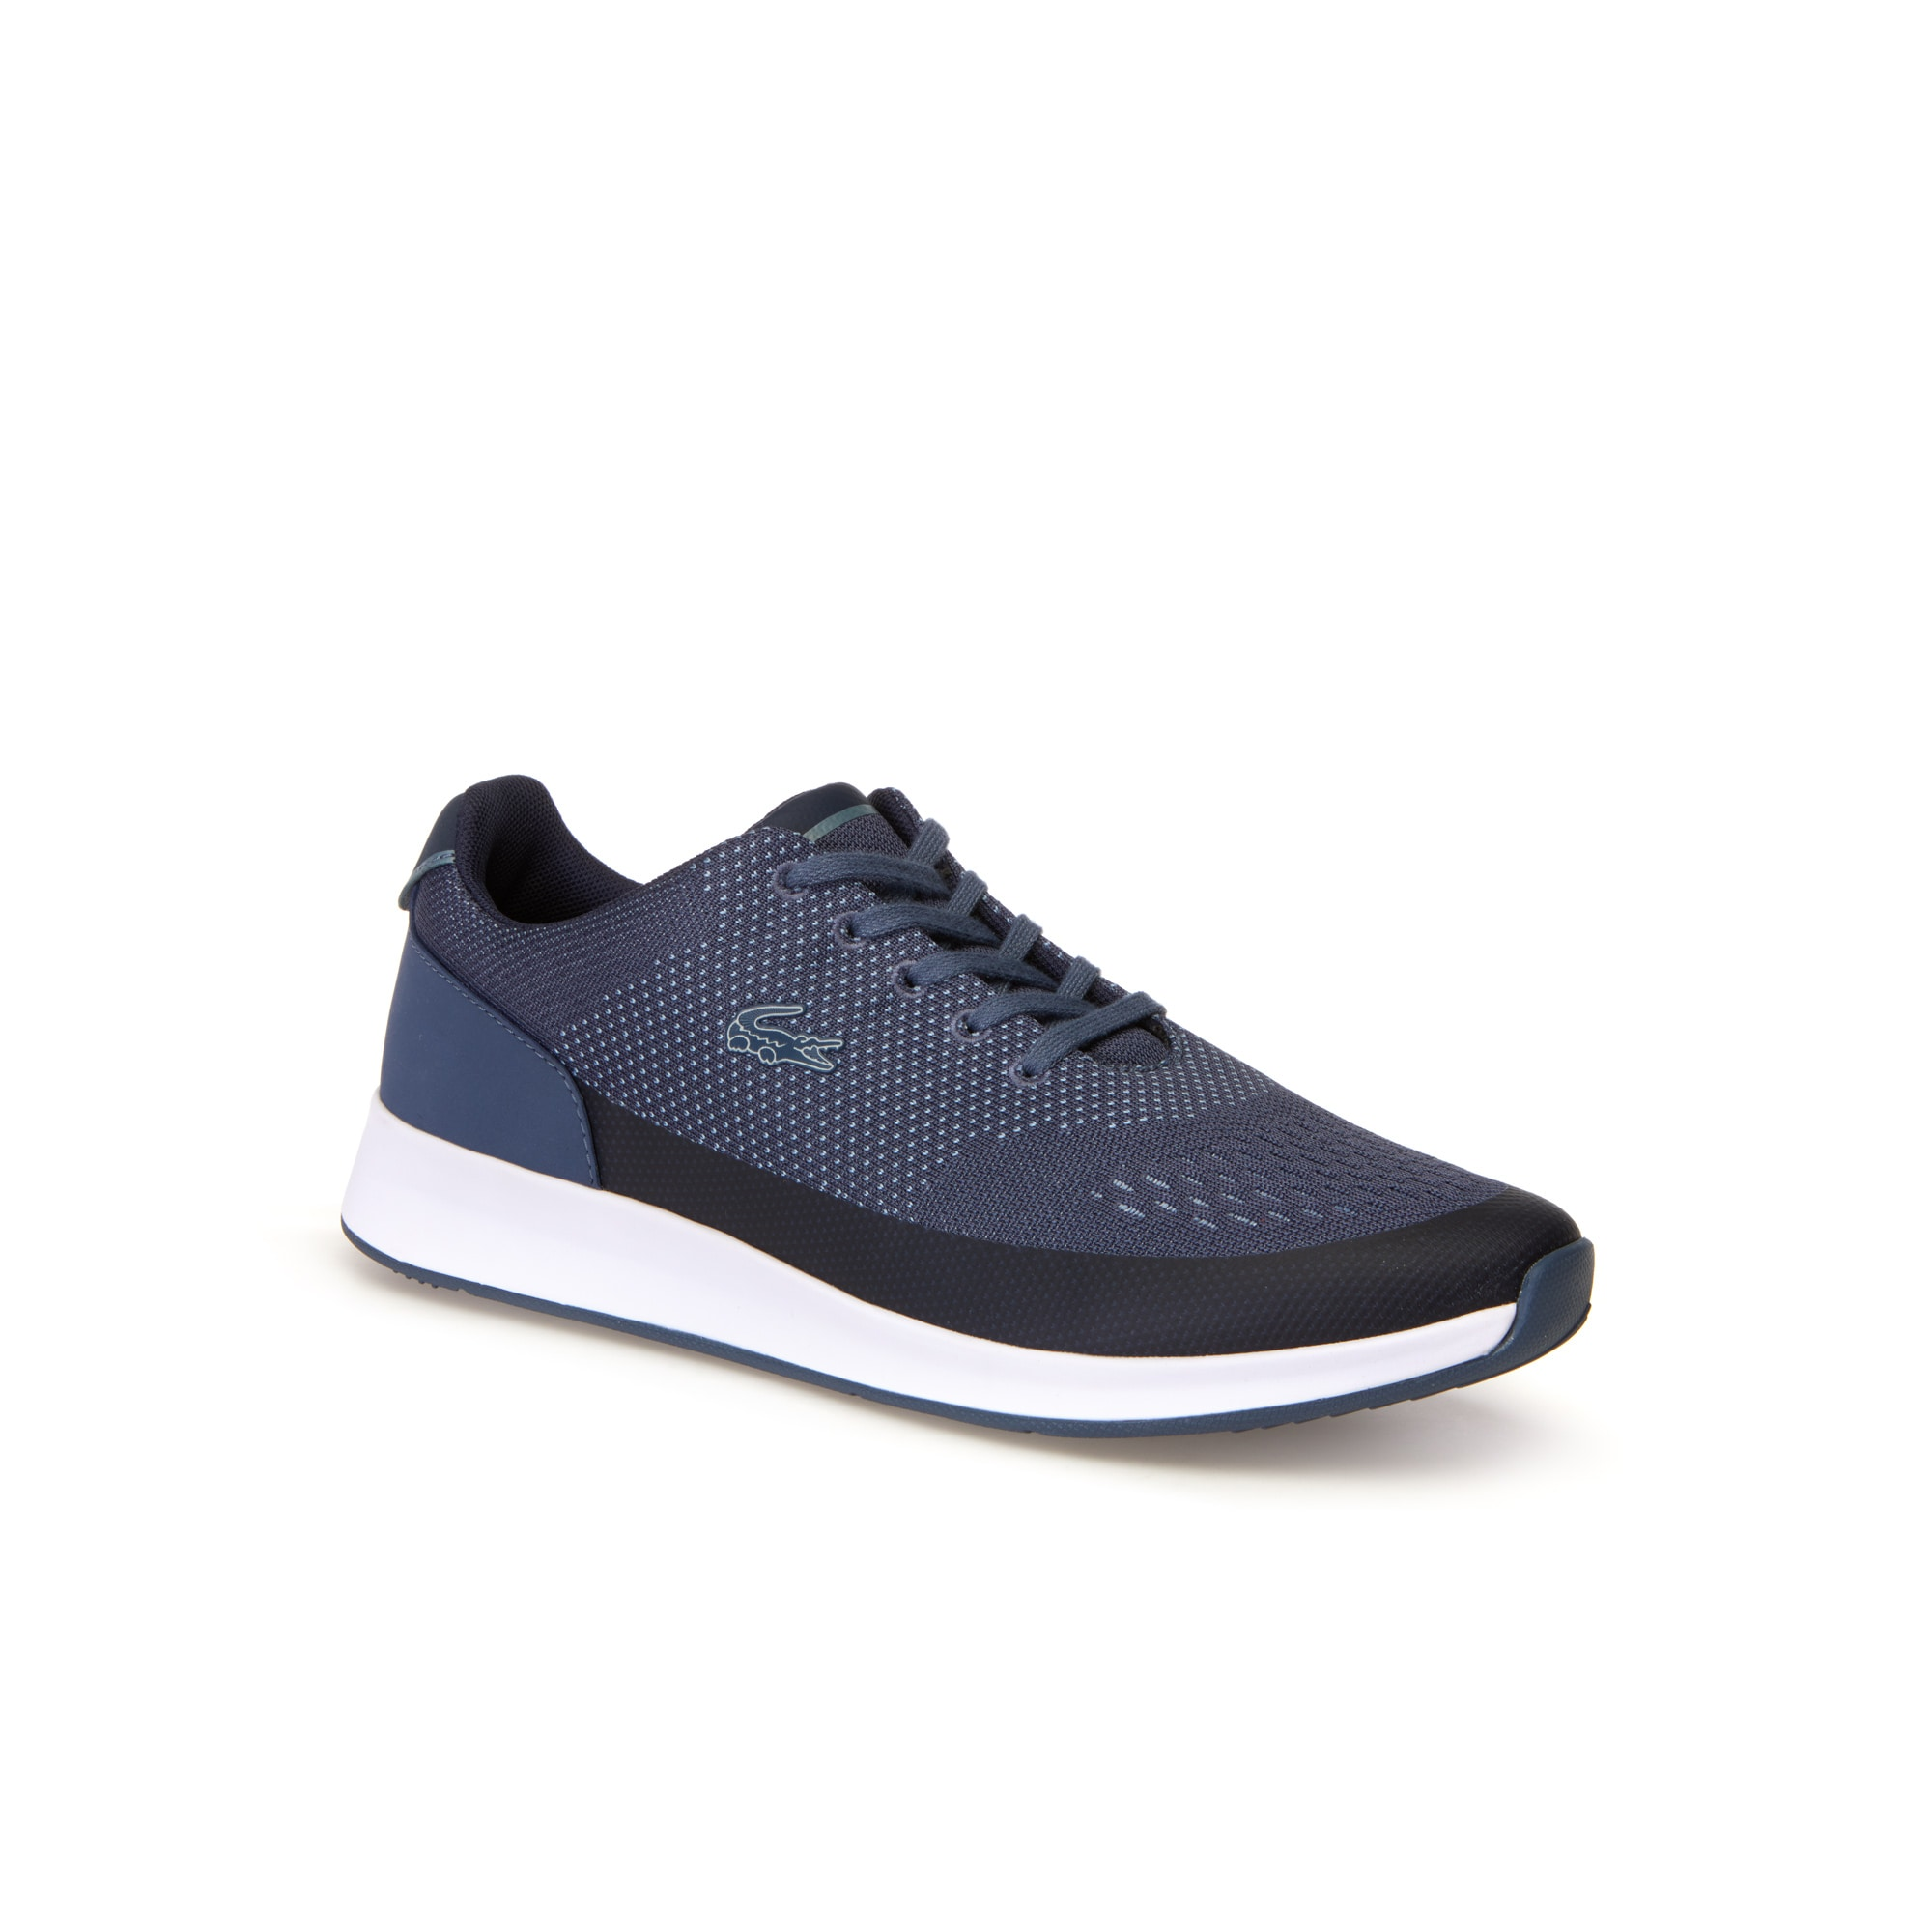 Lacoste For WomenBootsTrainersSneakers Shoes Lacoste For Lacoste WomenBootsTrainersSneakers Shoes CtsQdhr